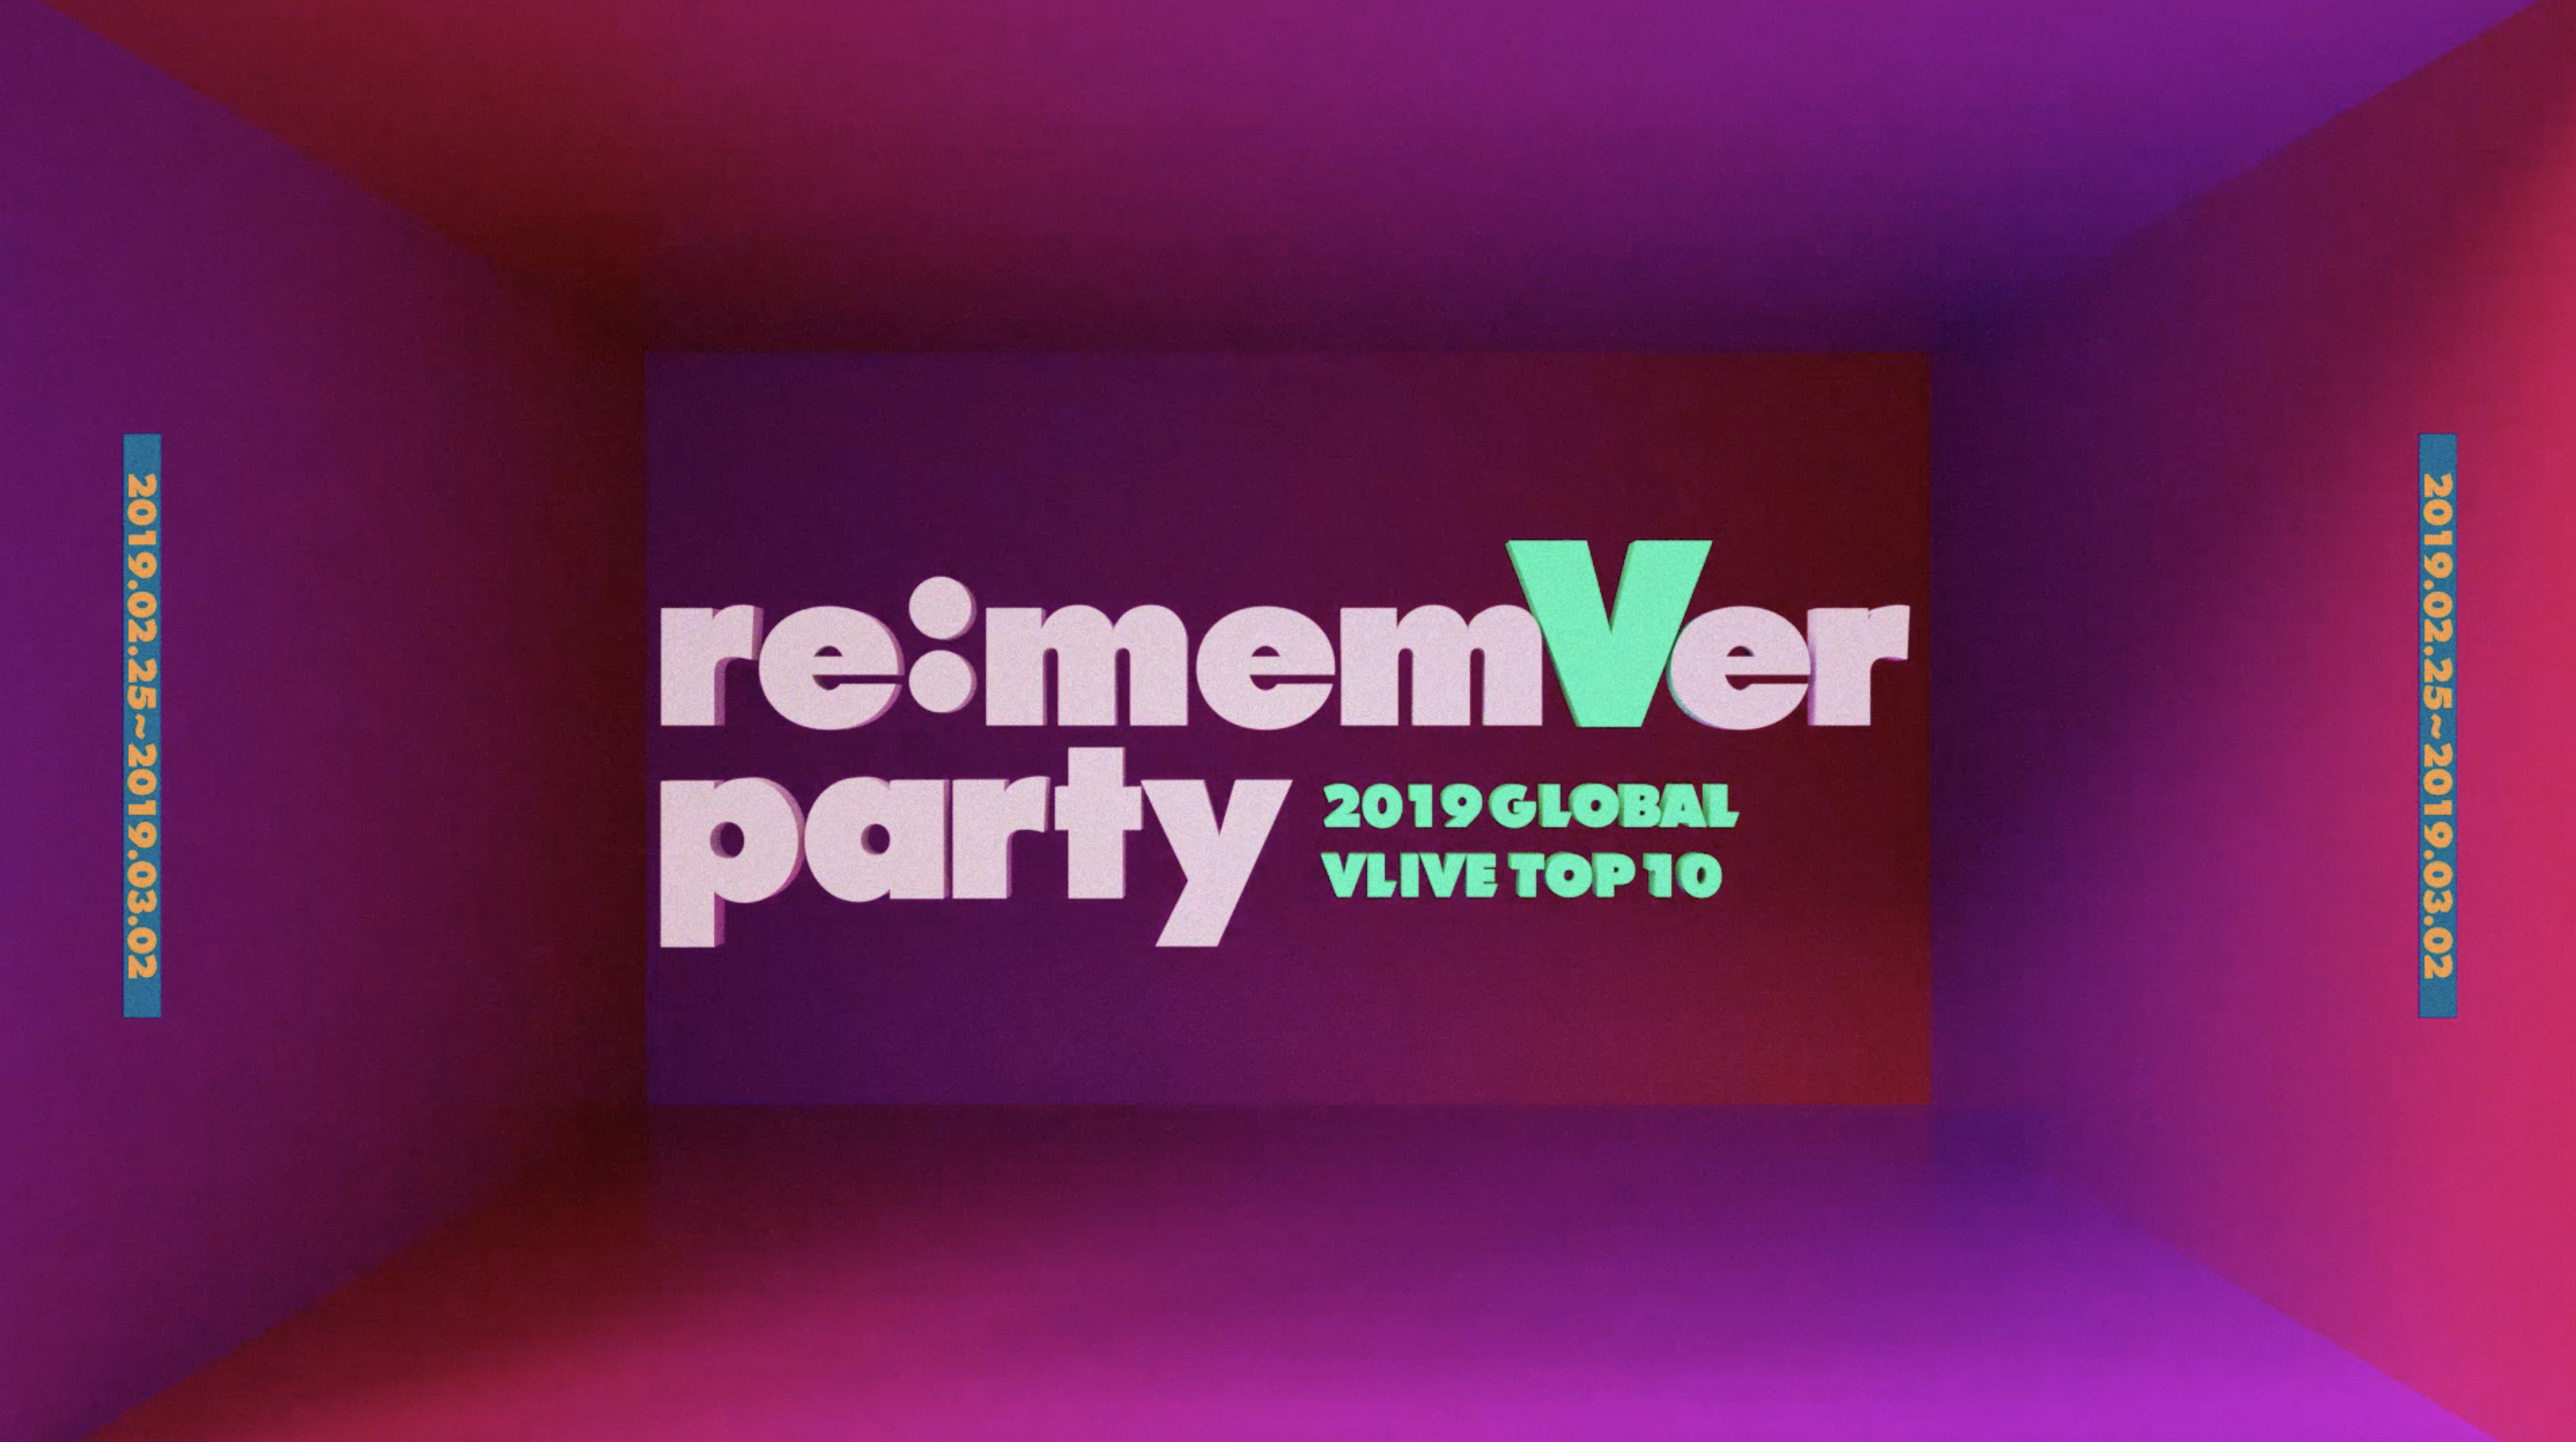 [ re:memVer party - 2019 GLOBAL VLIVE TOP 10] TEASER